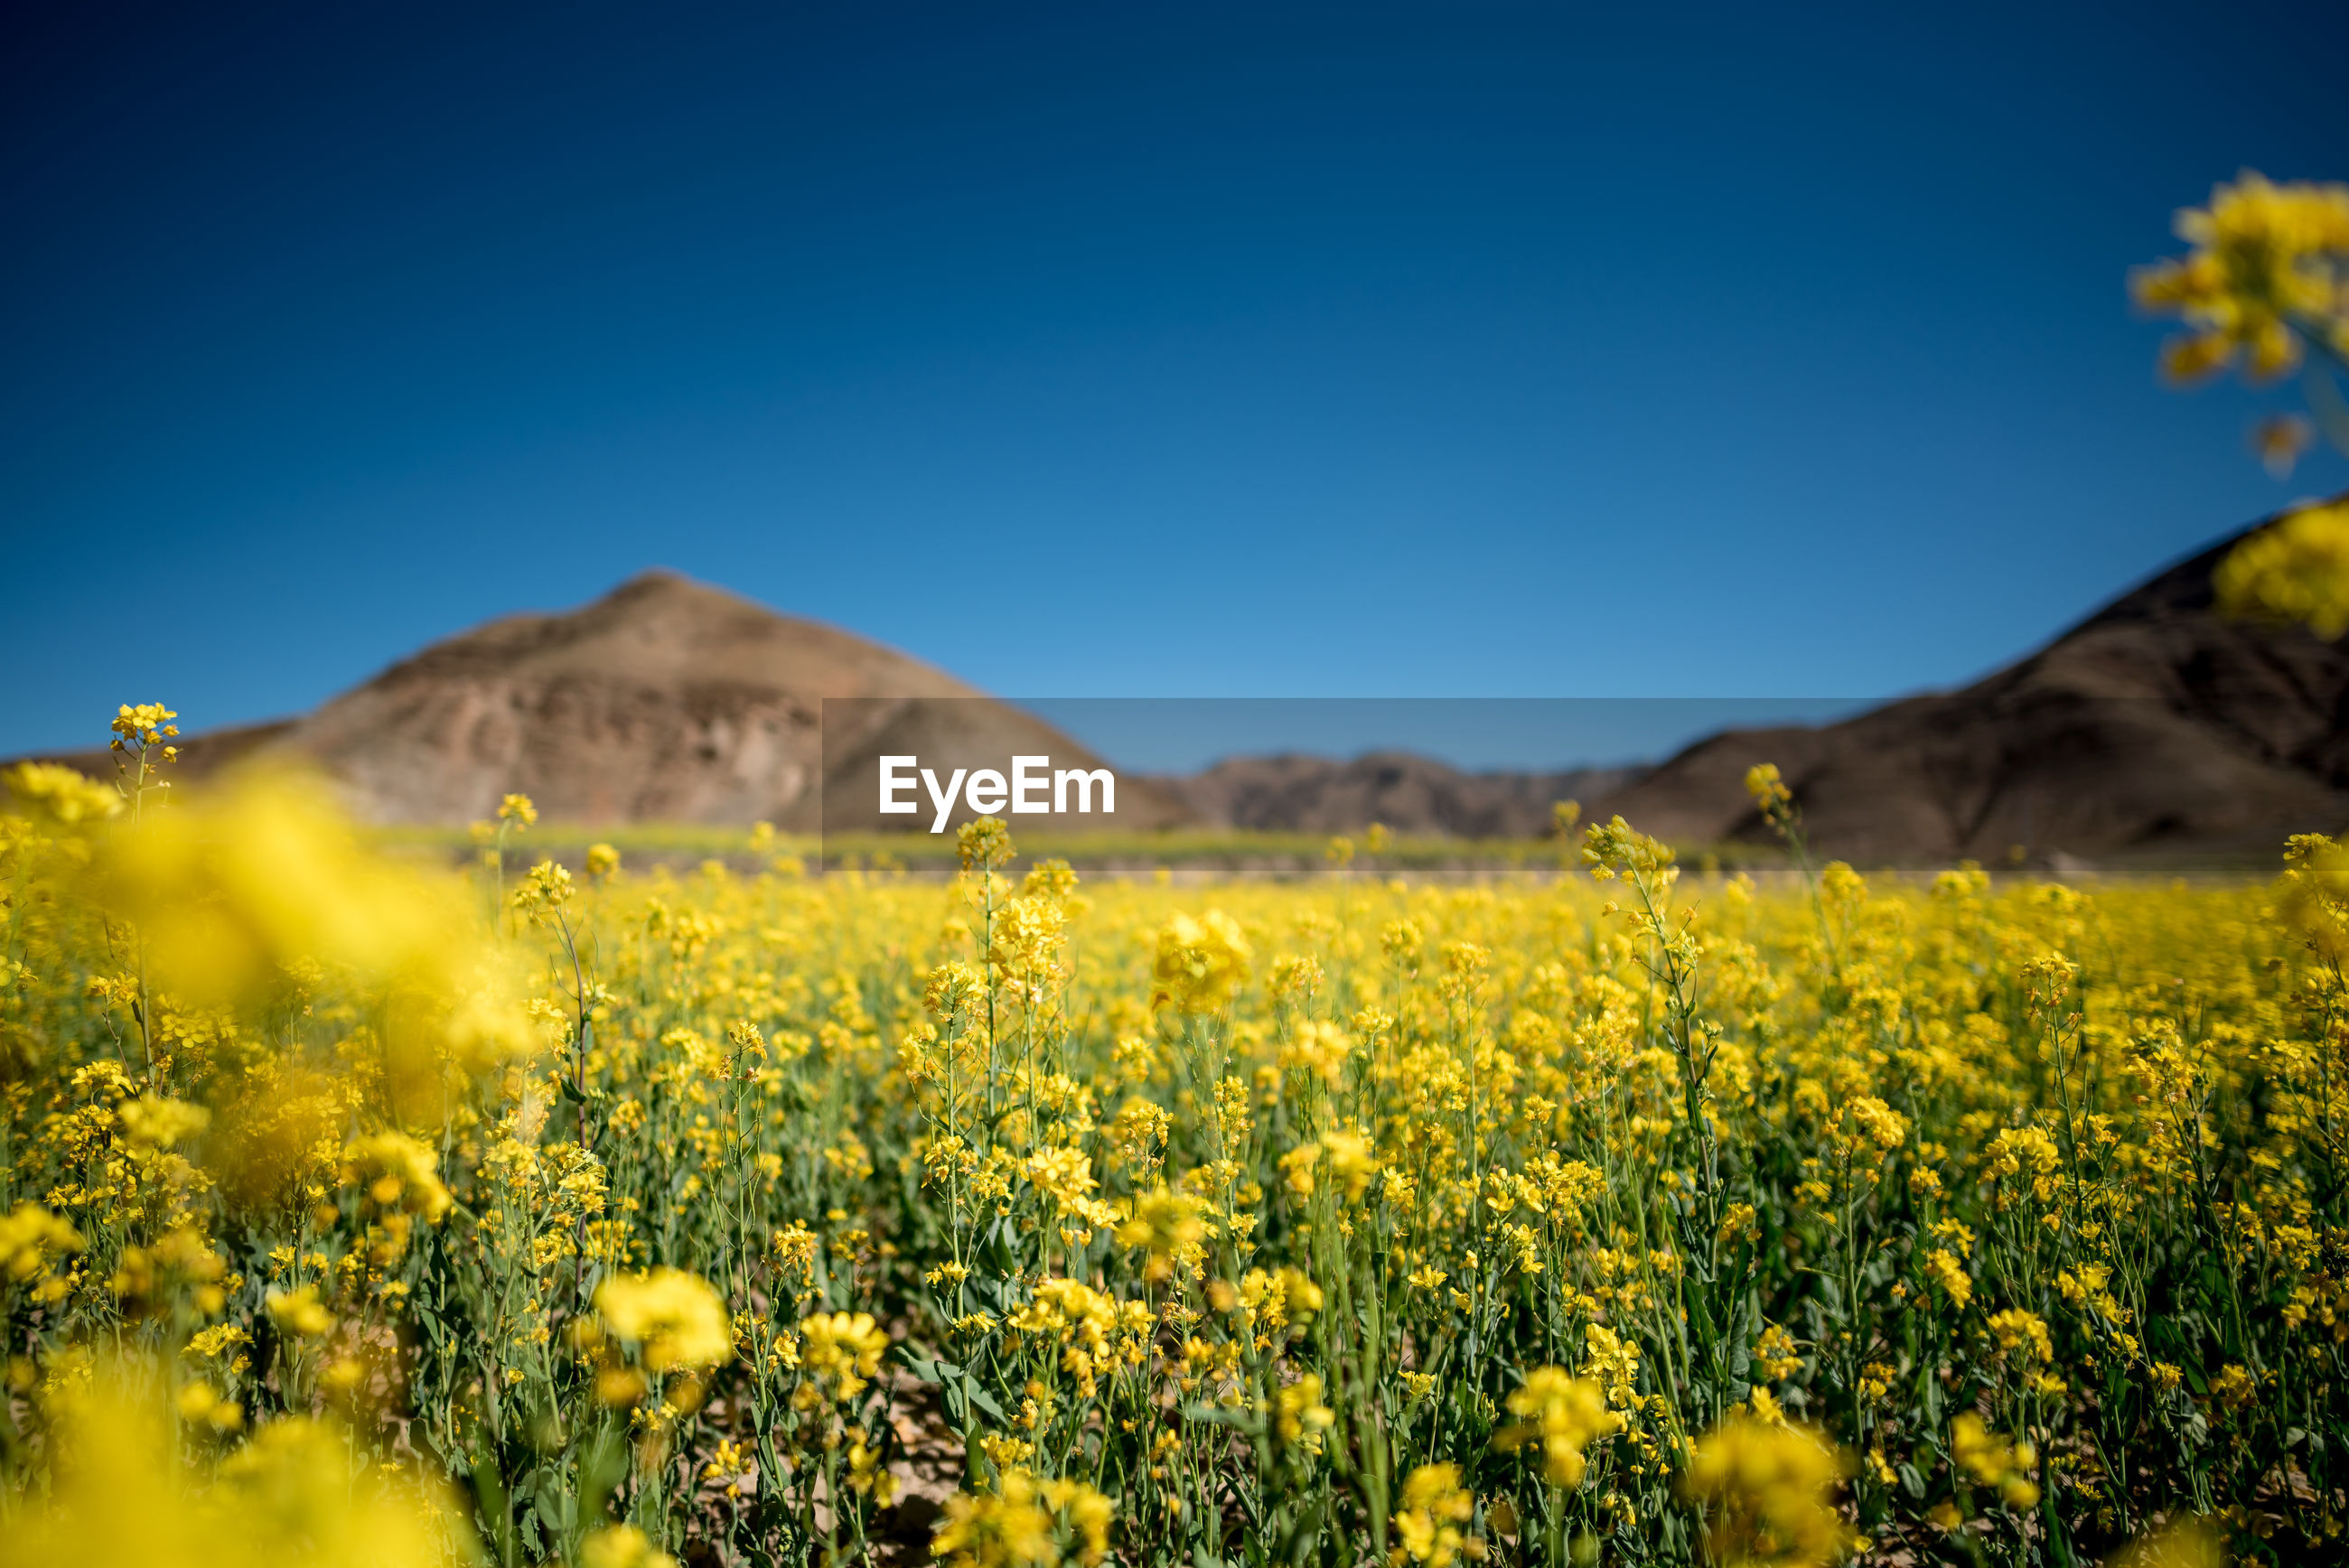 SCENIC VIEW OF YELLOW FLOWERING PLANTS AGAINST CLEAR SKY